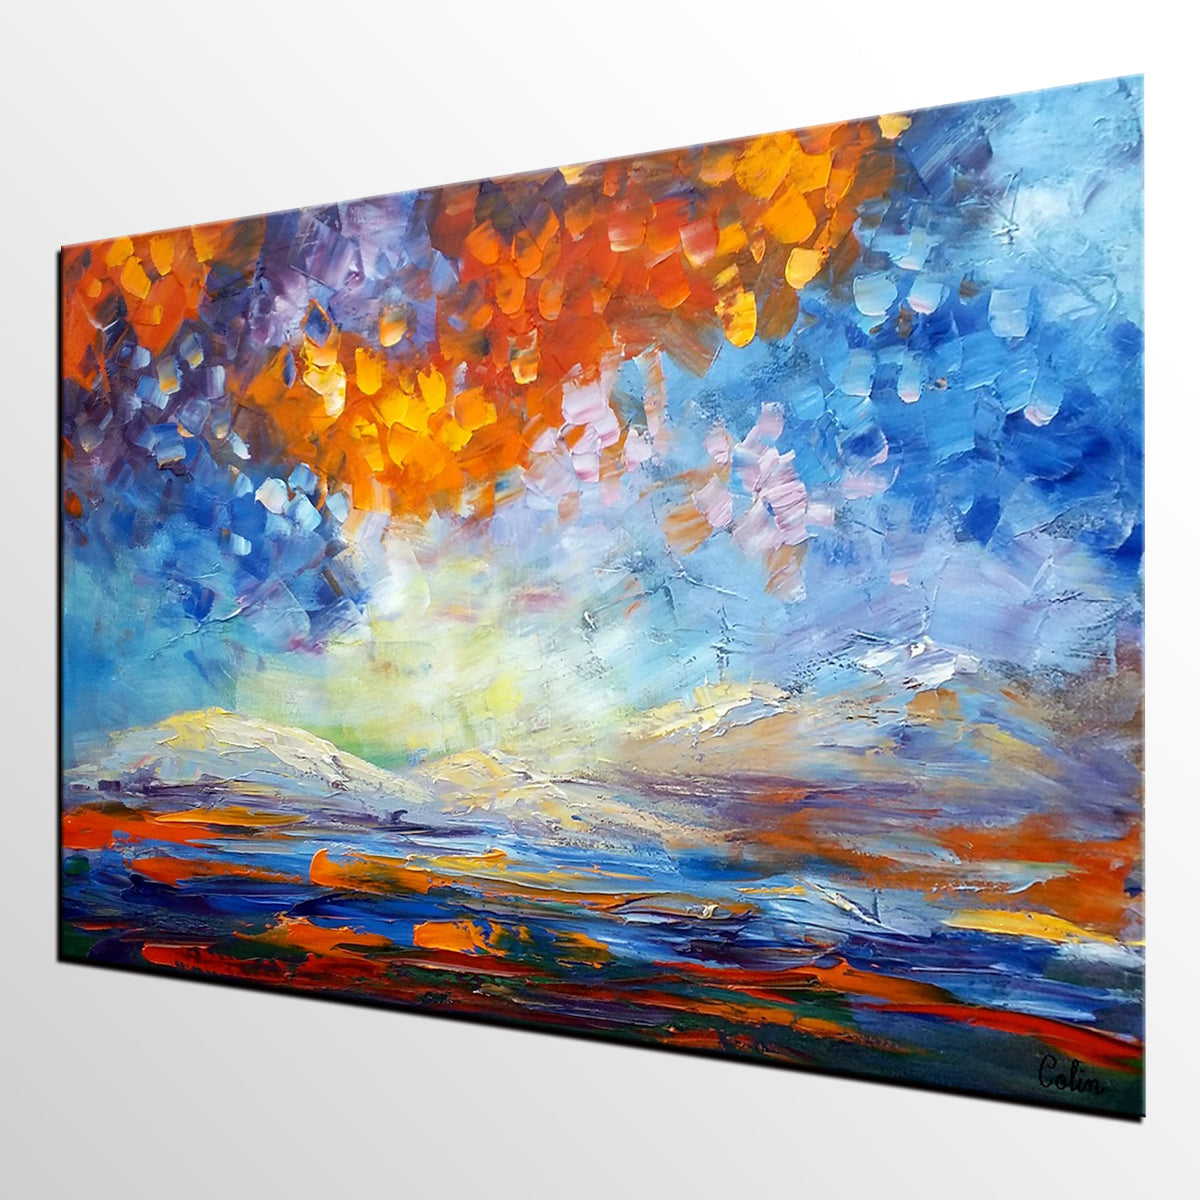 Bedroom Abstract Art, Abstract Landscape Painting, Oil Painting, Impasto Art